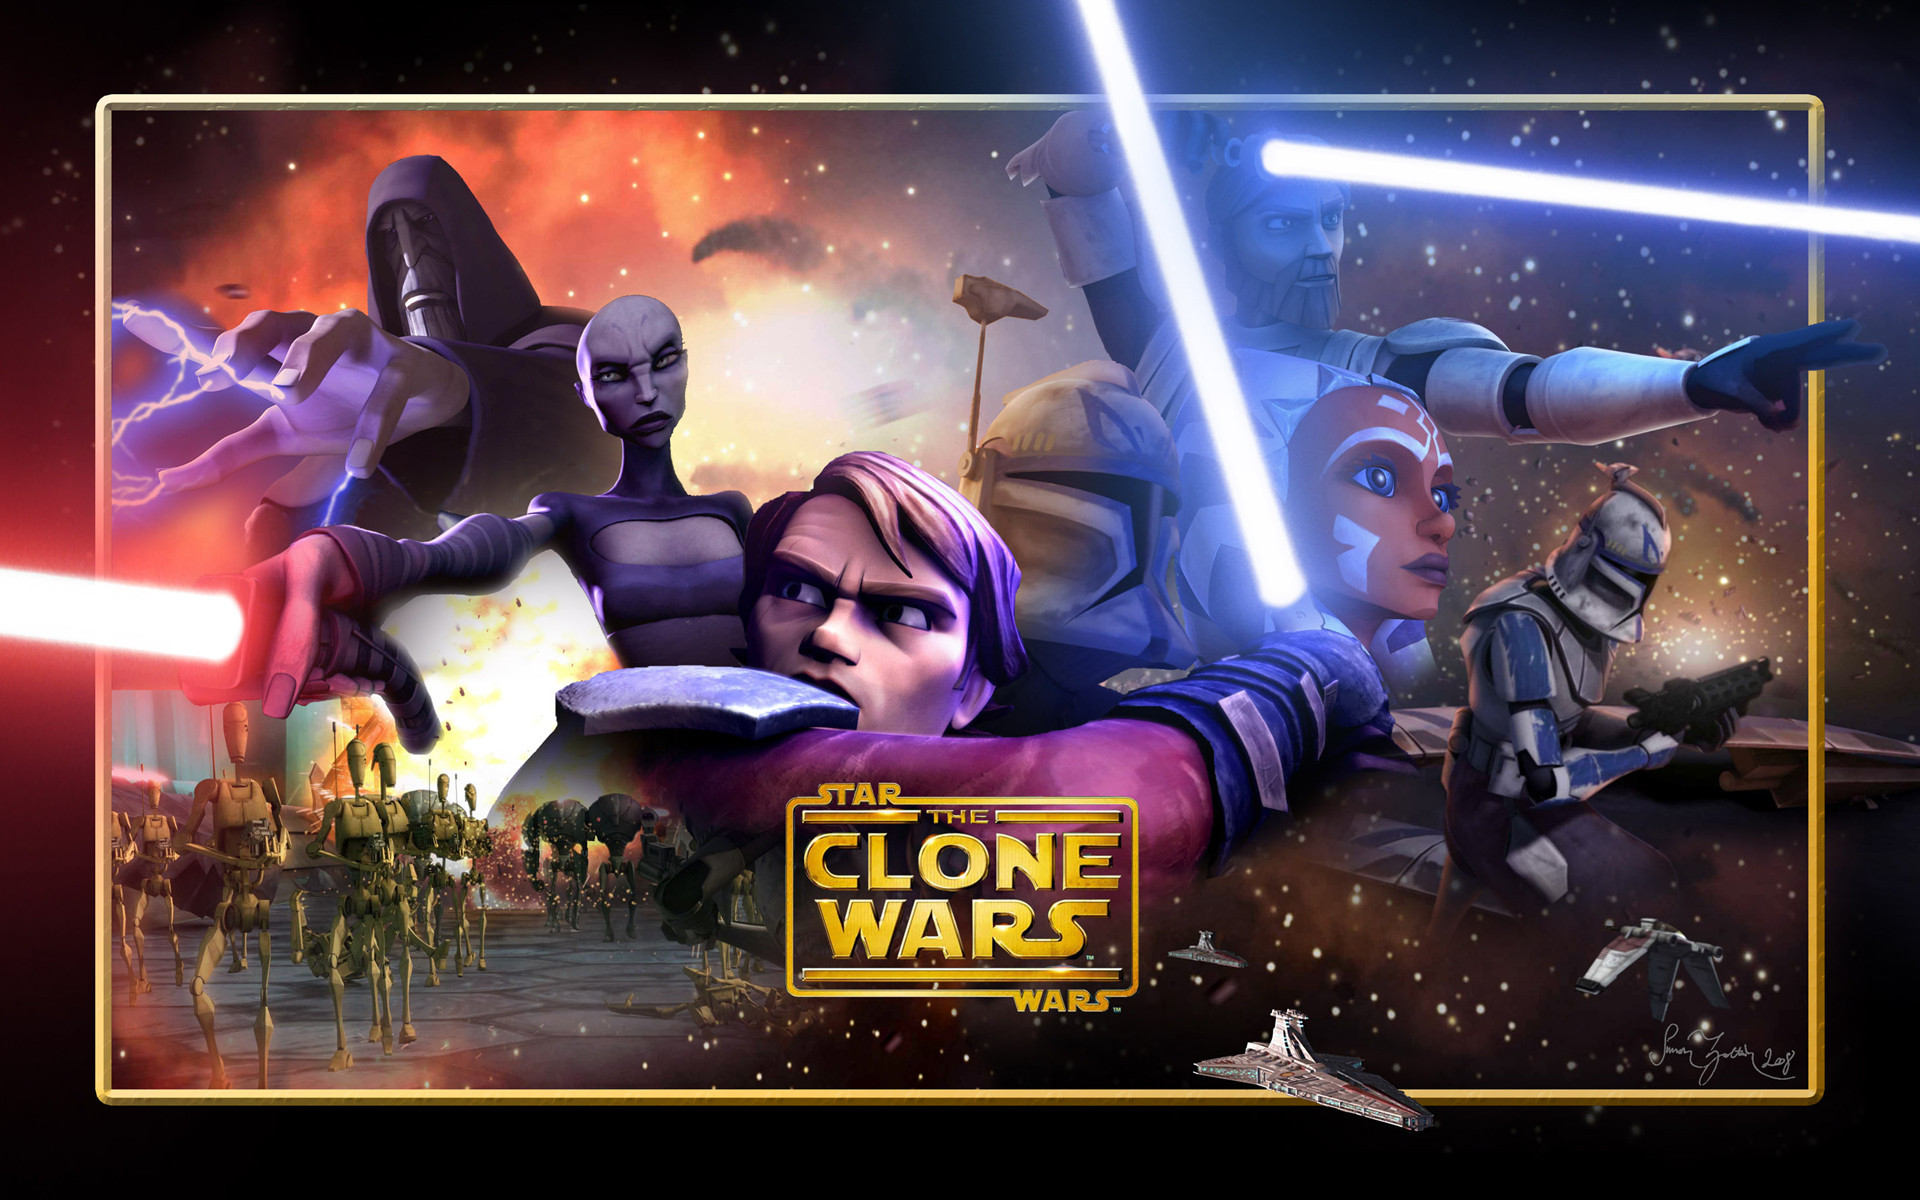 Star Wars Clone Wars Wallpaper Wallpapertag